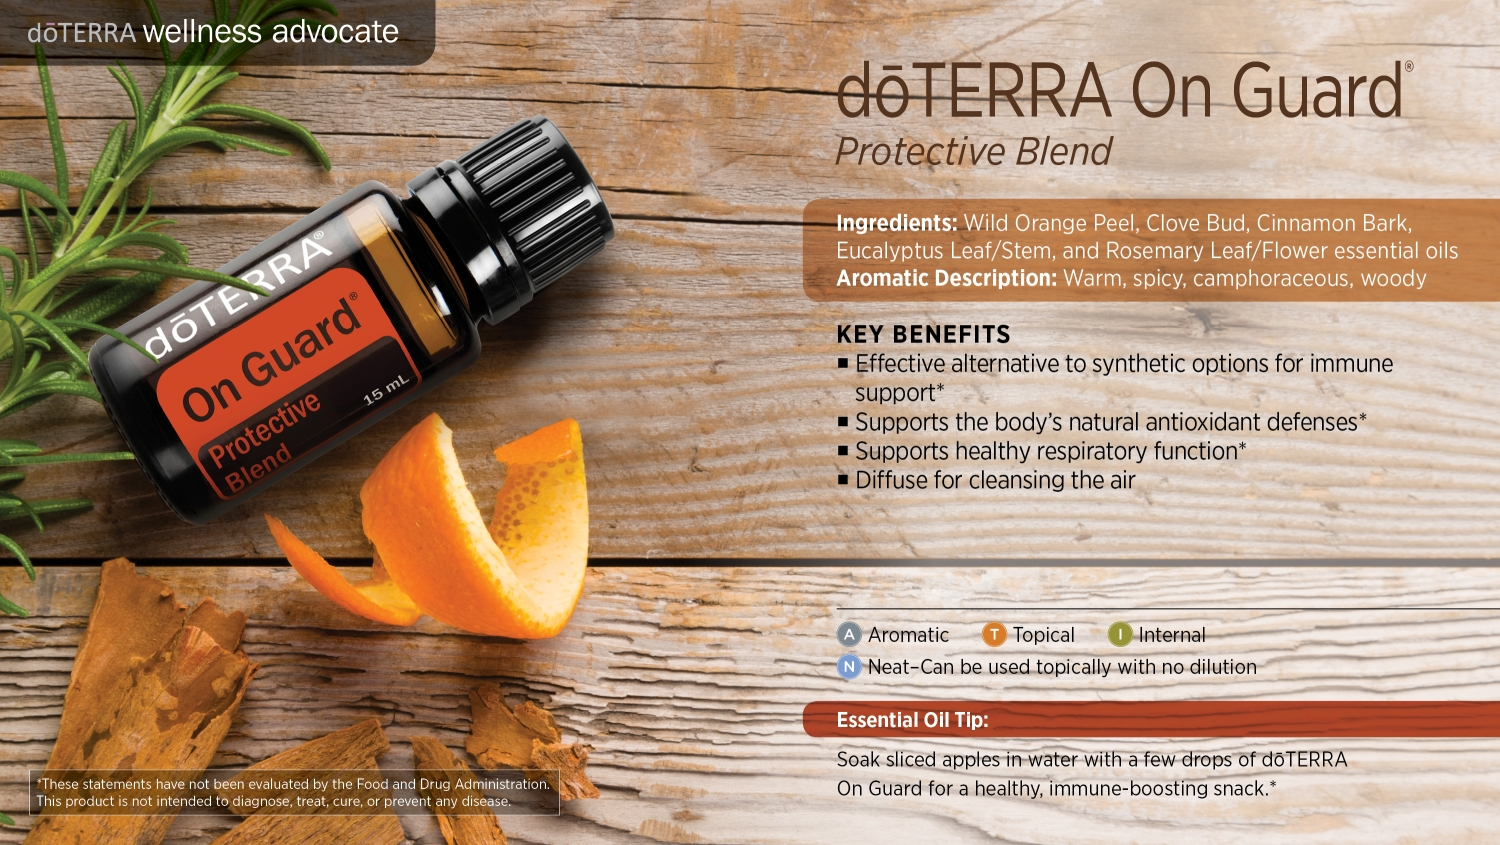 Doterra on guard uses